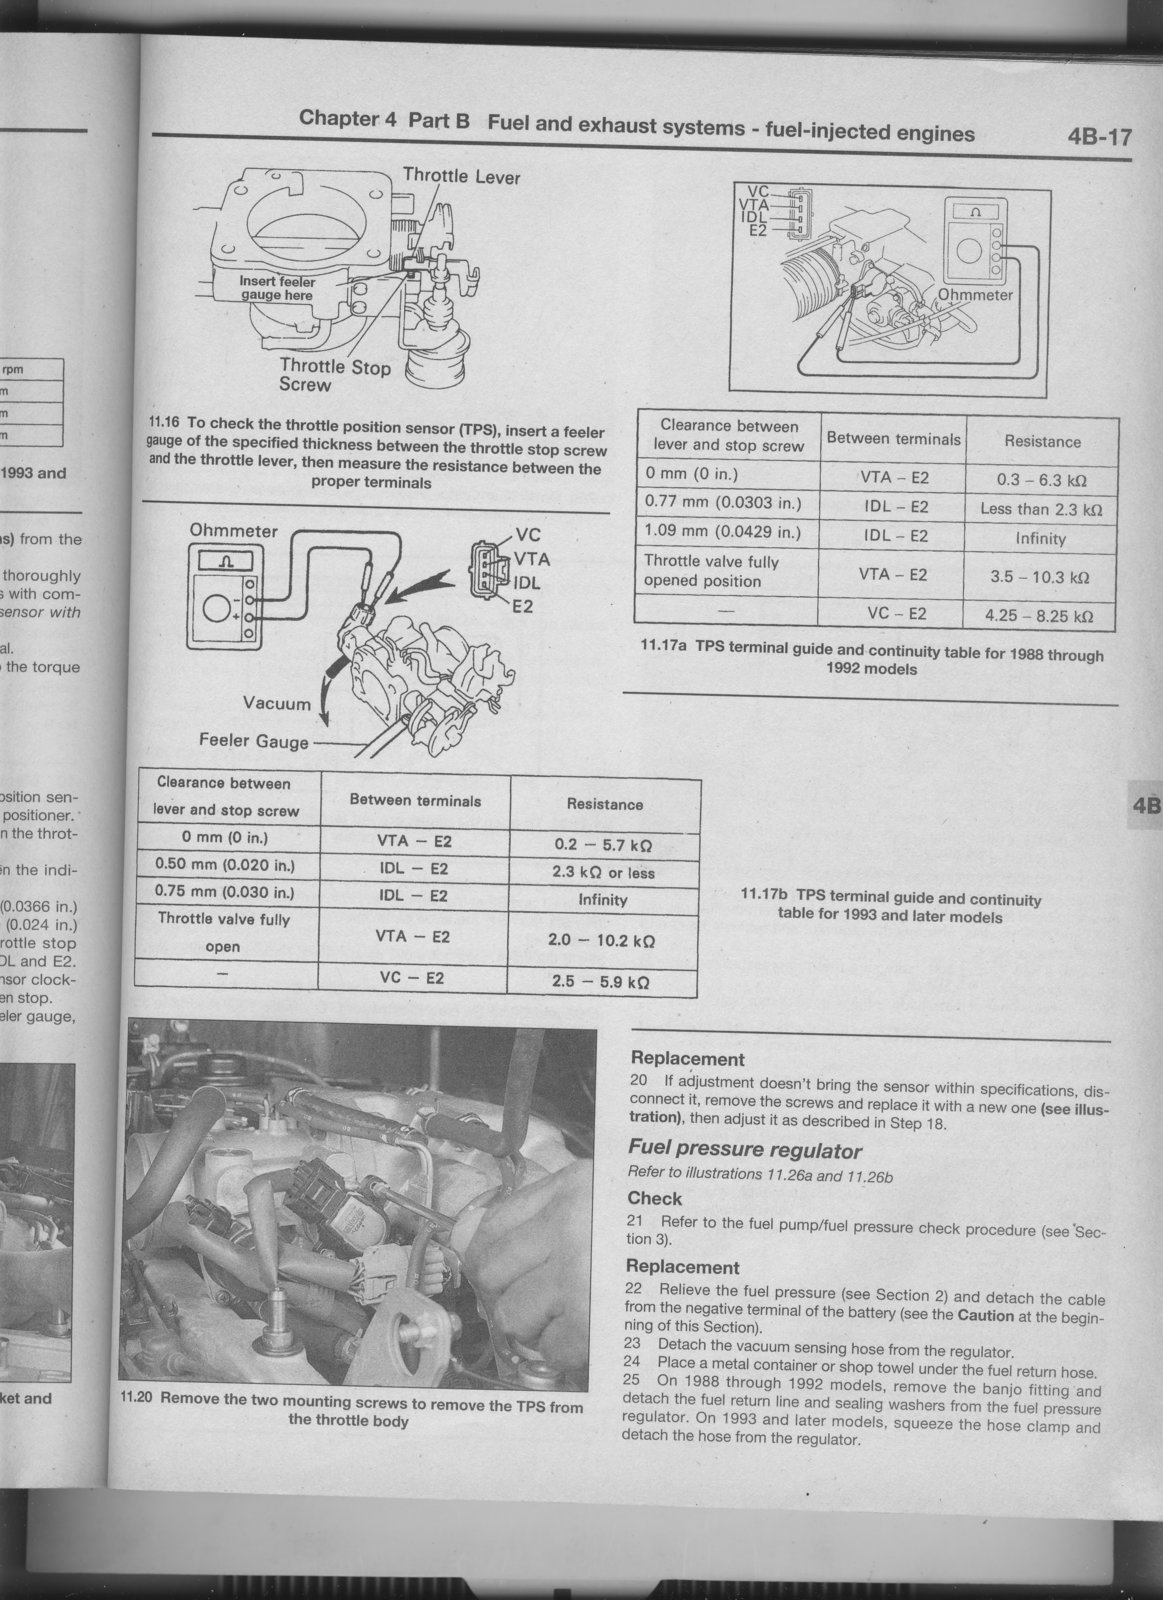 Tps Adjustment Land Cruiser Club On 60 Series Engine Schematics 01 02